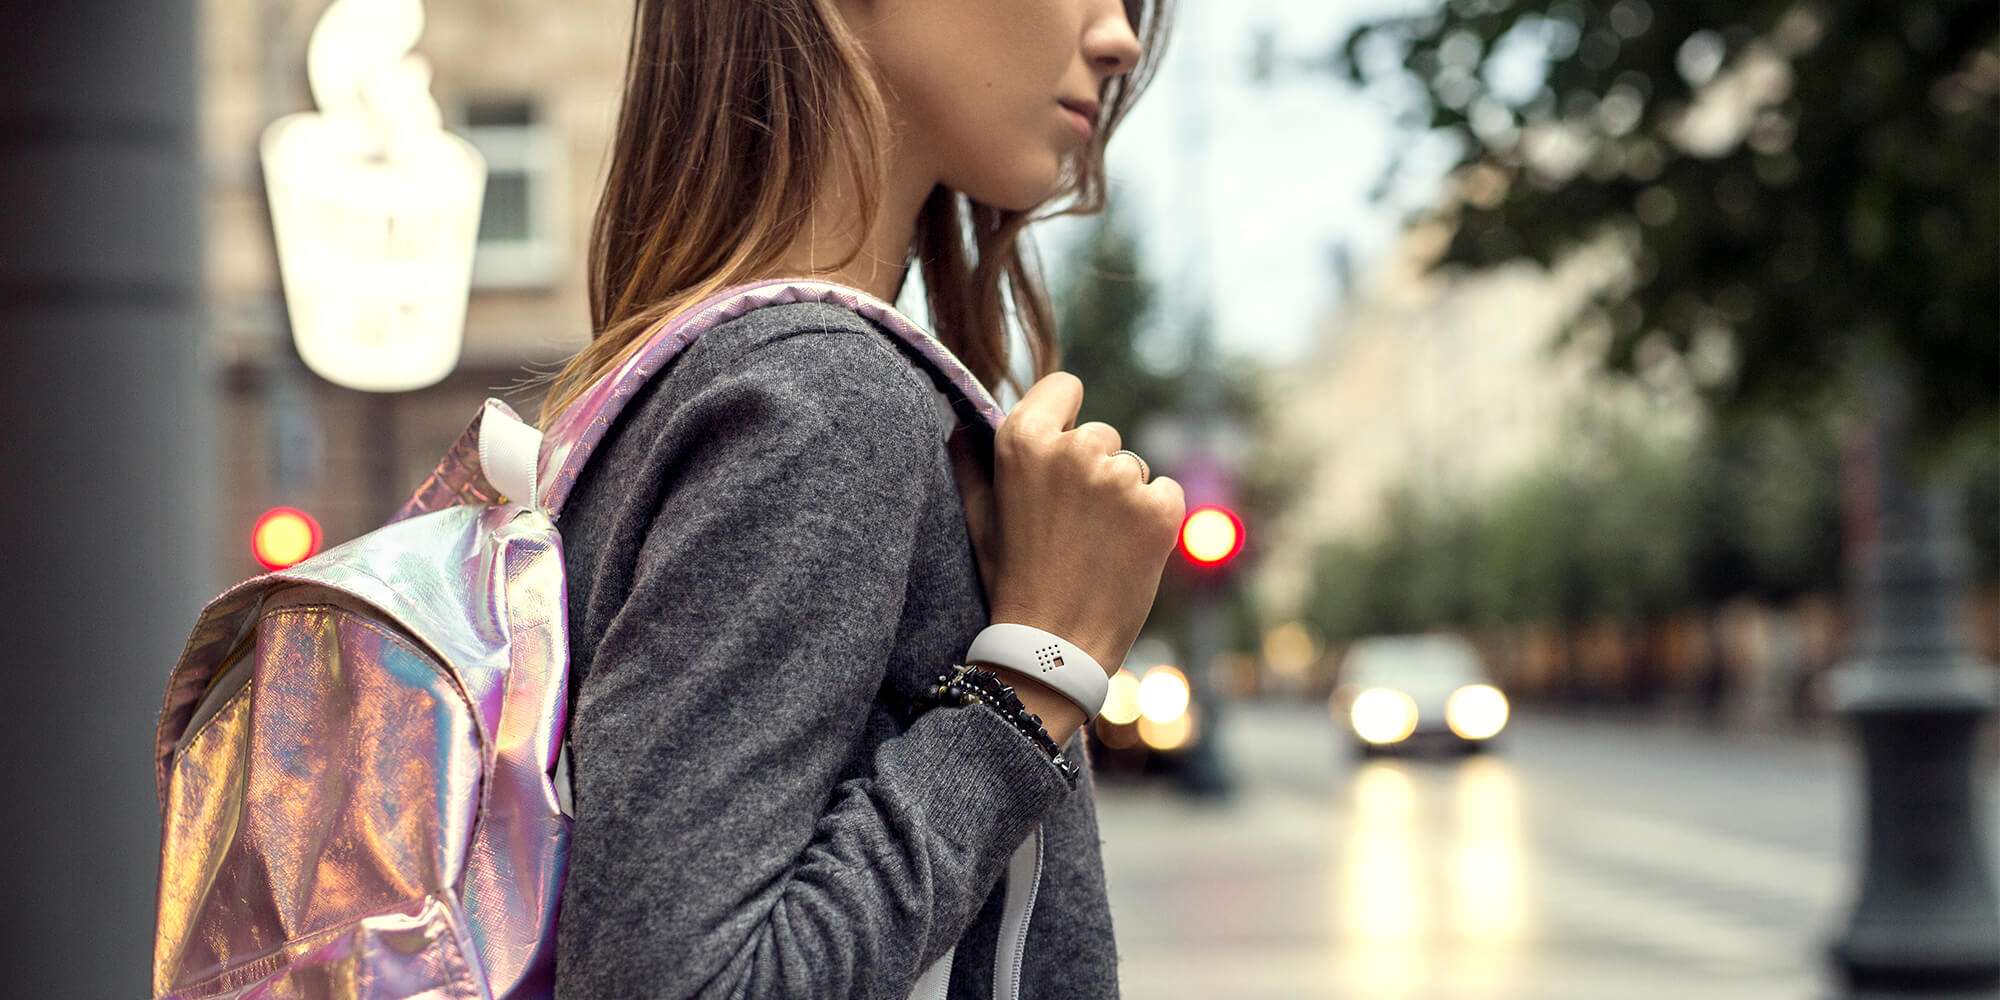 Lady wears the smooth AMBRIO bracelet while walking in the street